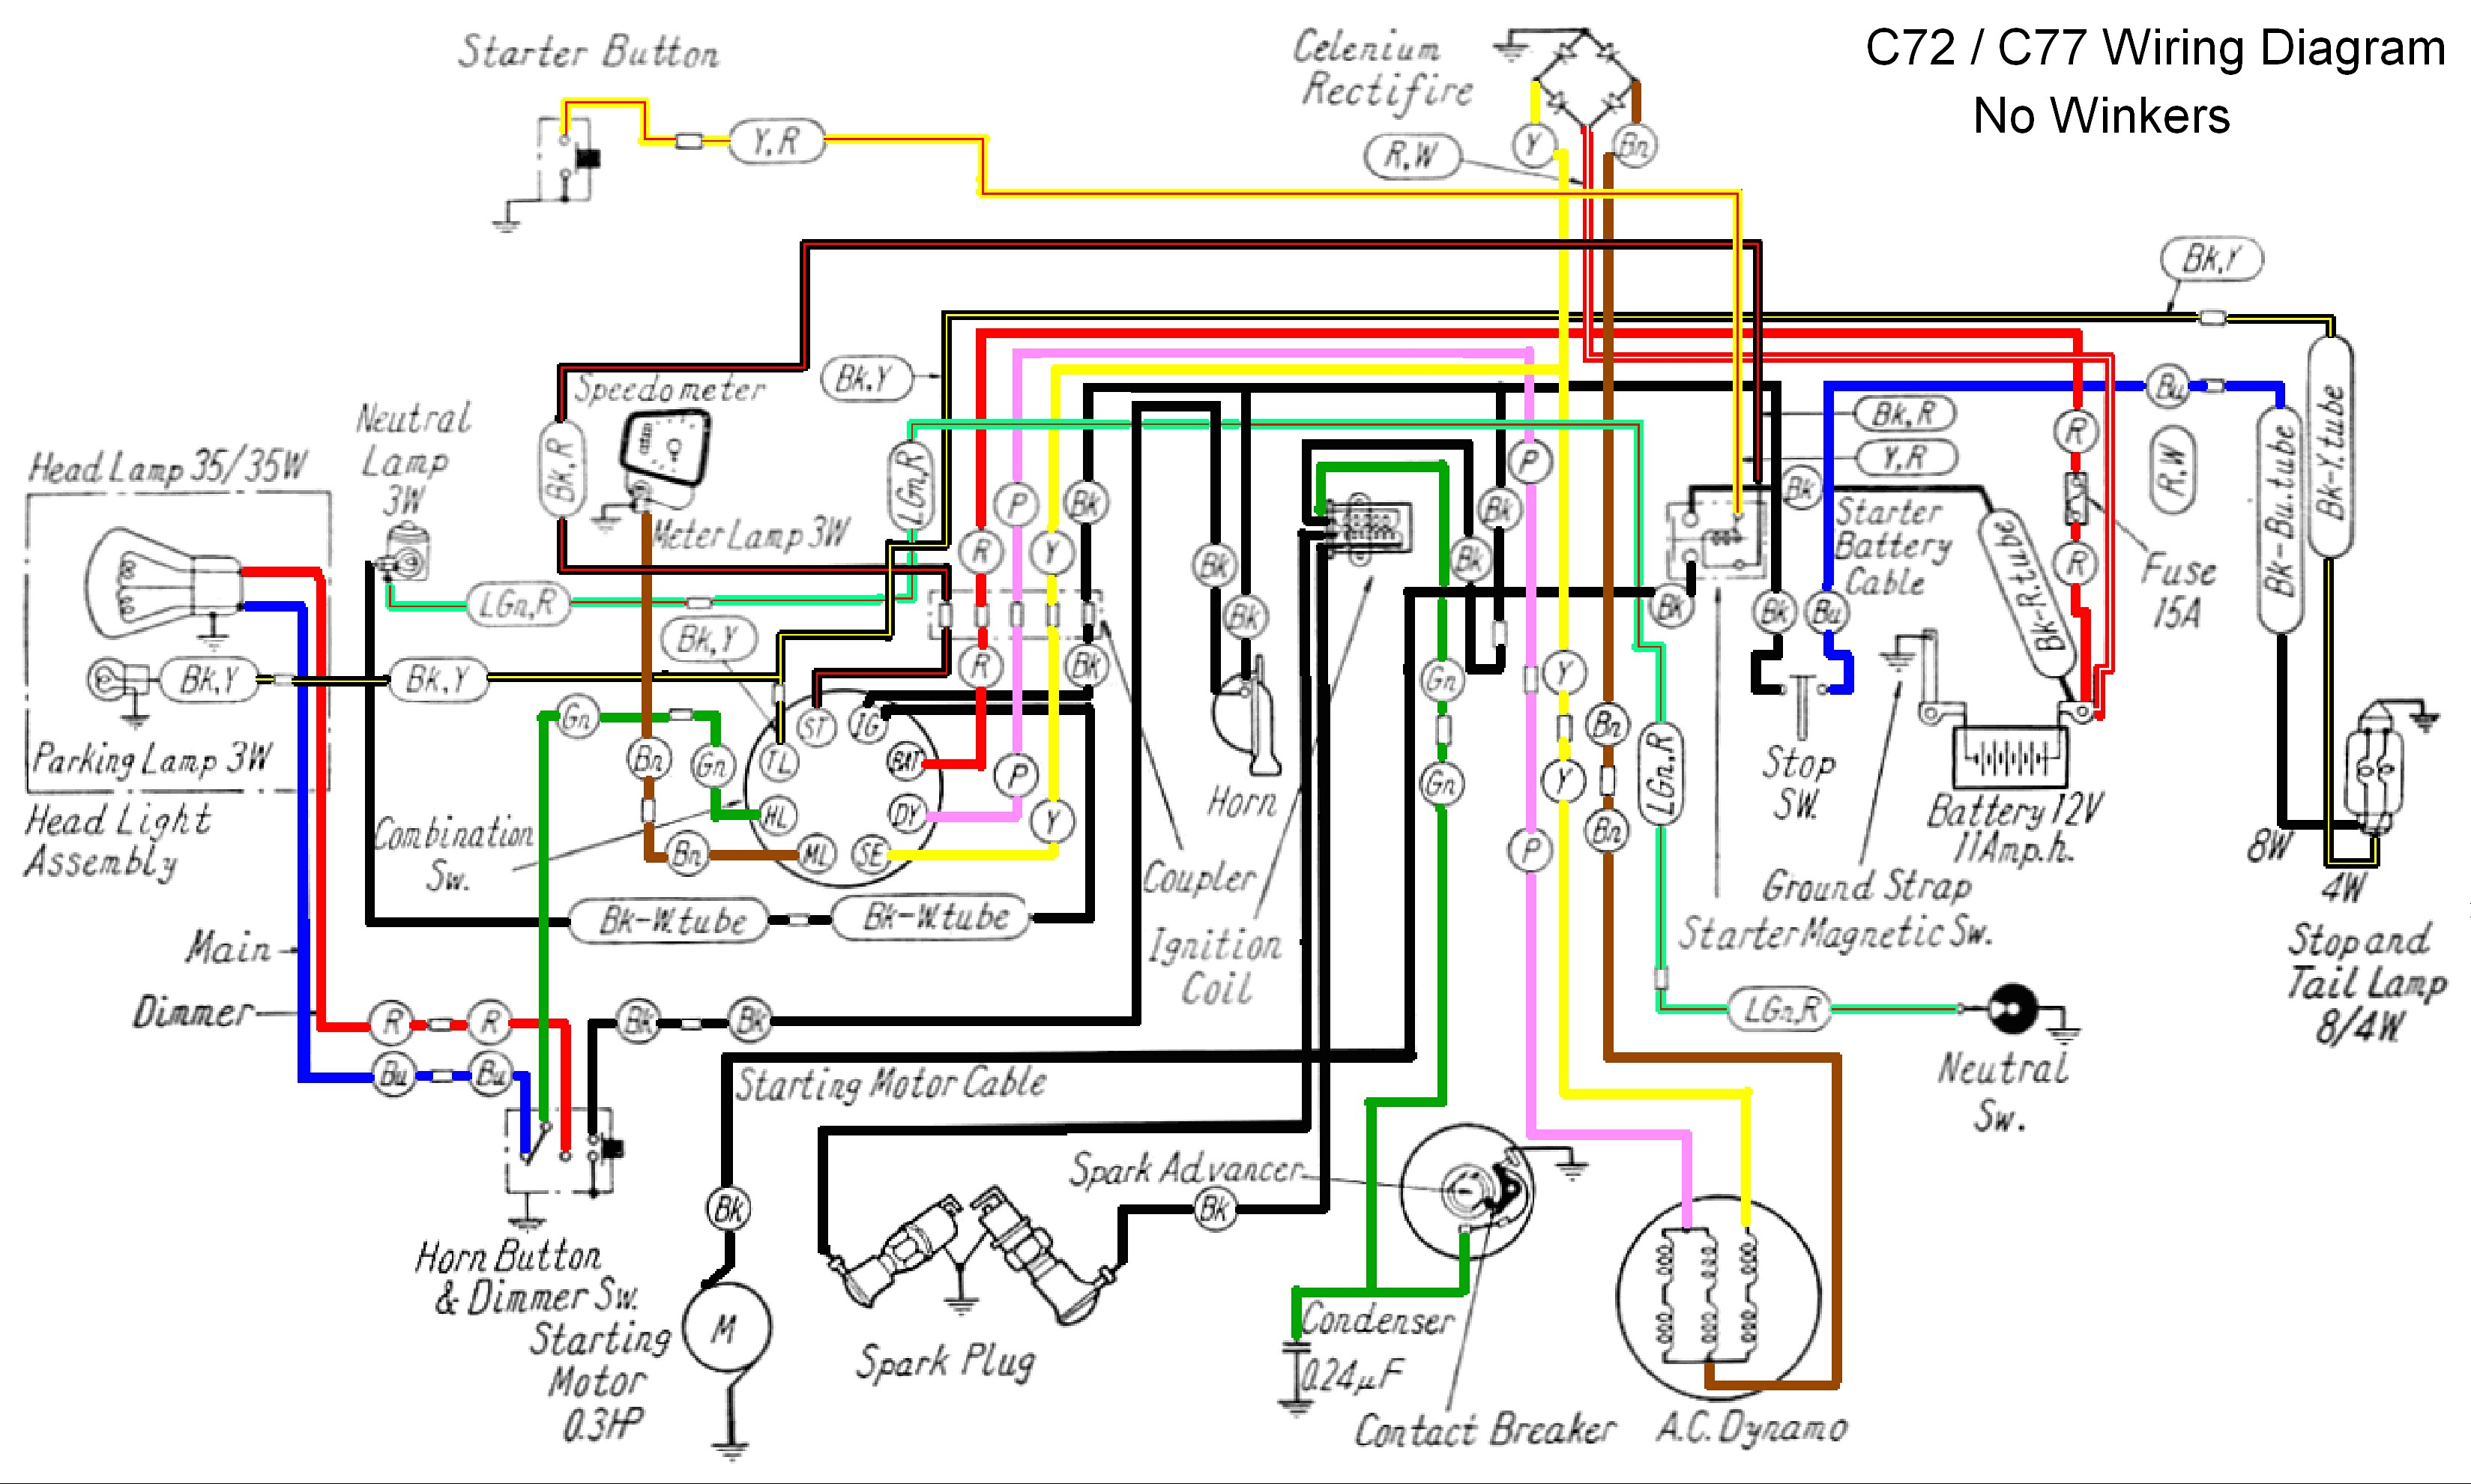 small resolution of 2015 harley softail wiring diagram simple wiring diagrams accessories wiring diagram 2016 harley softail wiring diagram